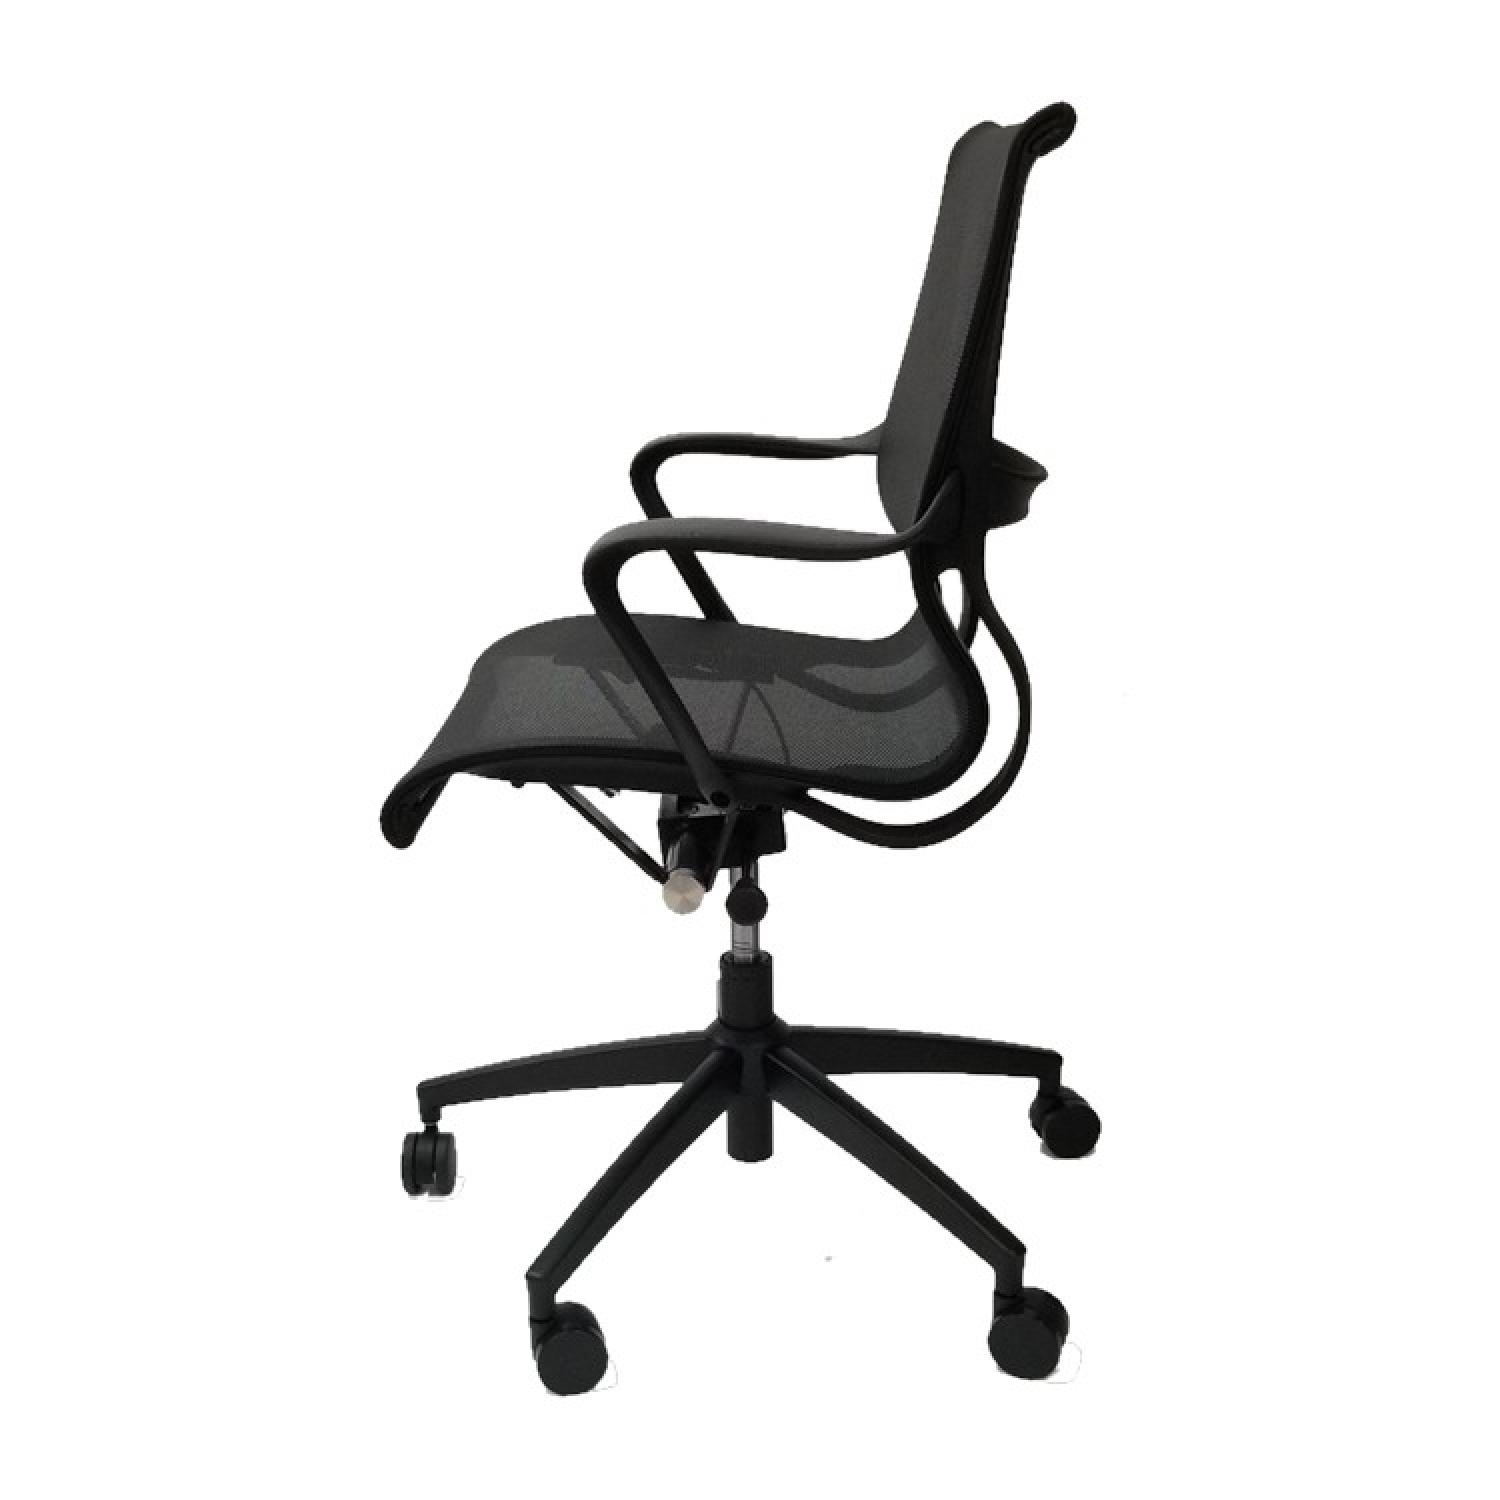 Modern Office Chair w/ Armrests & Black Mesh Fabric - image-1